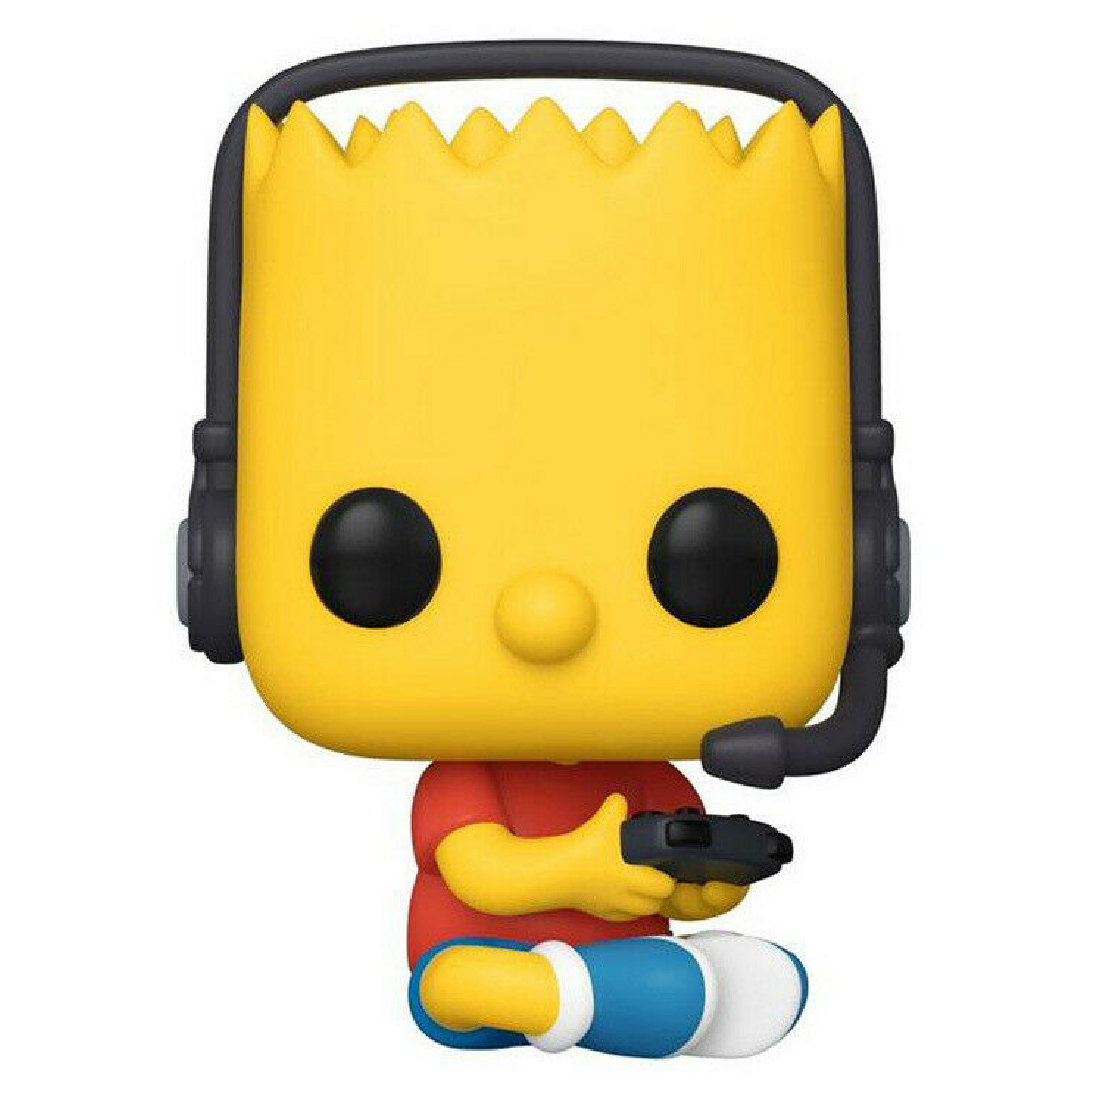 Funko Pop! Television The Simpsons 1035 Gamer Bart